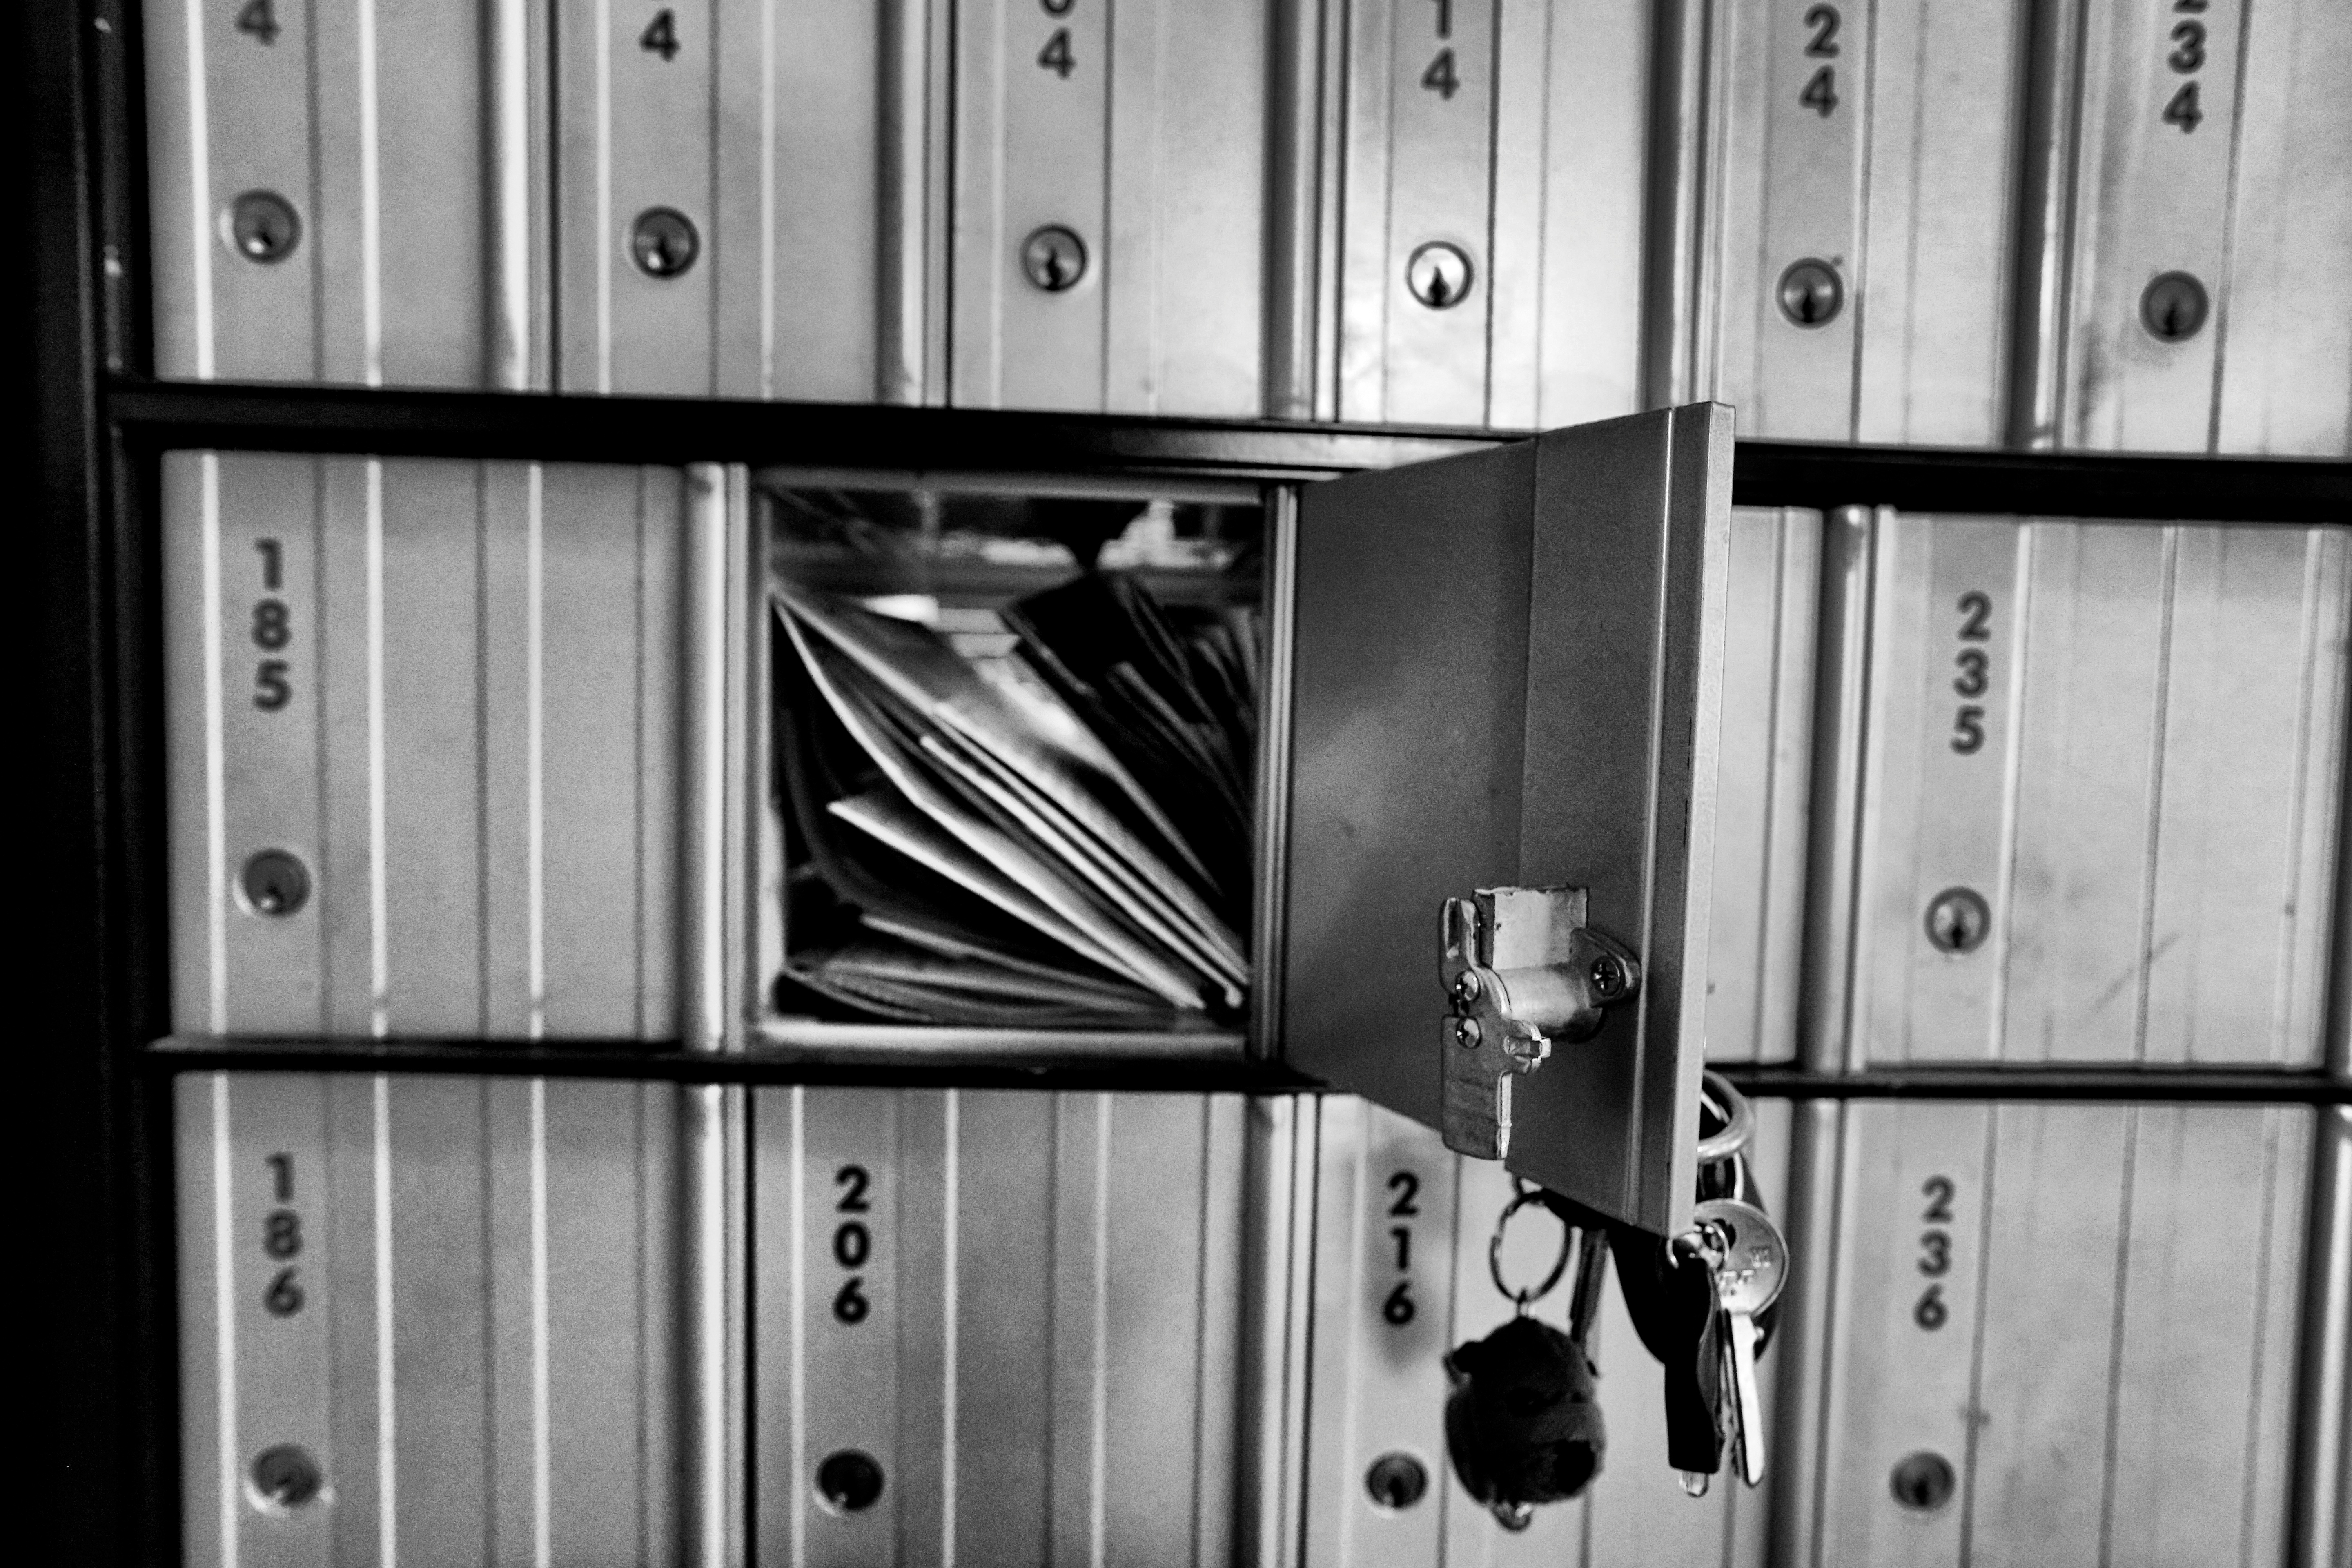 Post Office Box 205 Today Life Is A Wheel Bedlam Farm